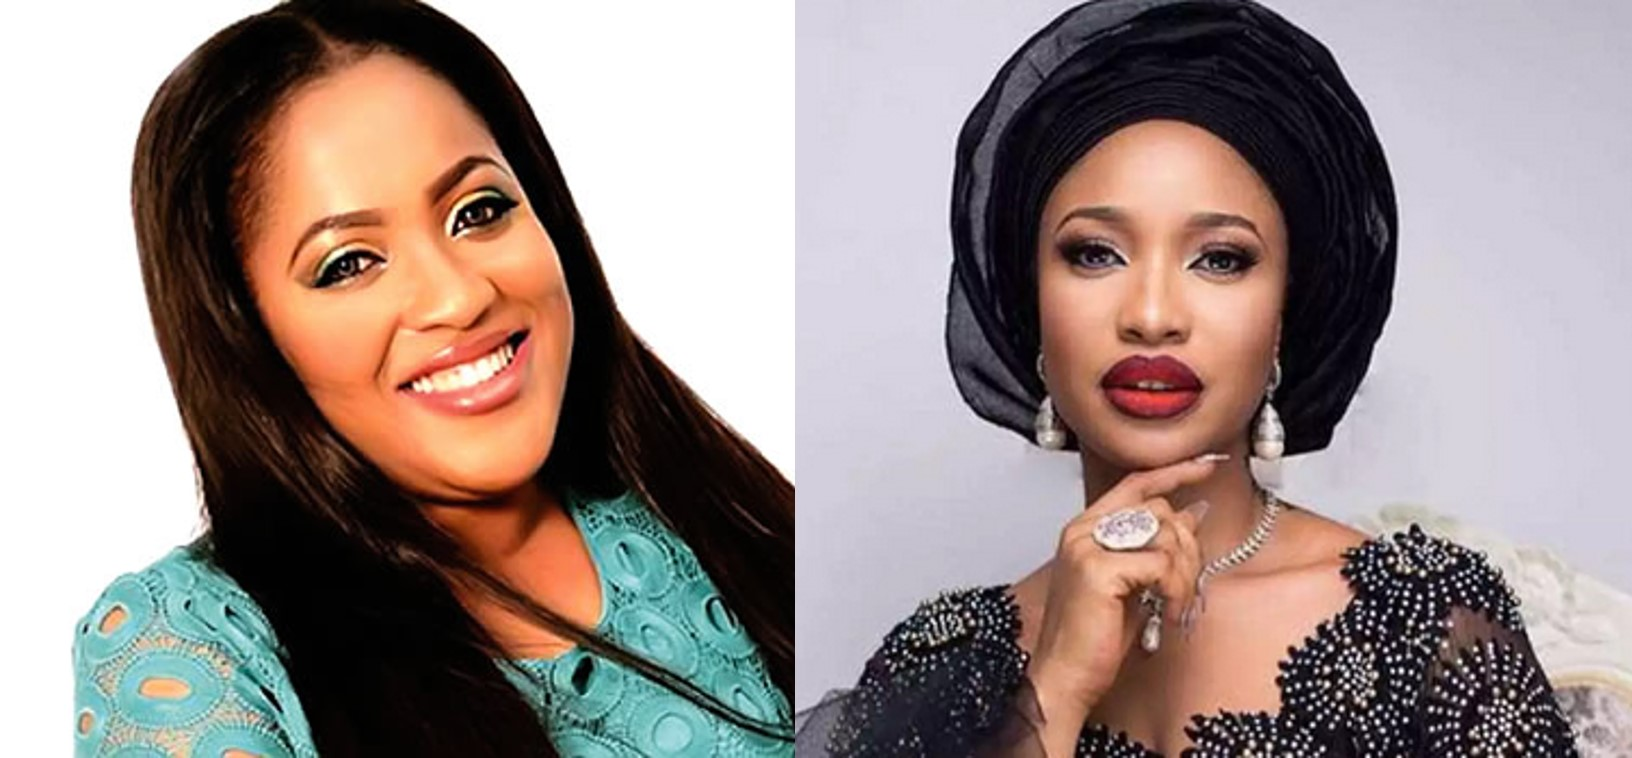 """She's not an Icon! She's popular for immorality"" – Actress, Grace Ama blasts Tonto Dikeh, mentions Etinosa"